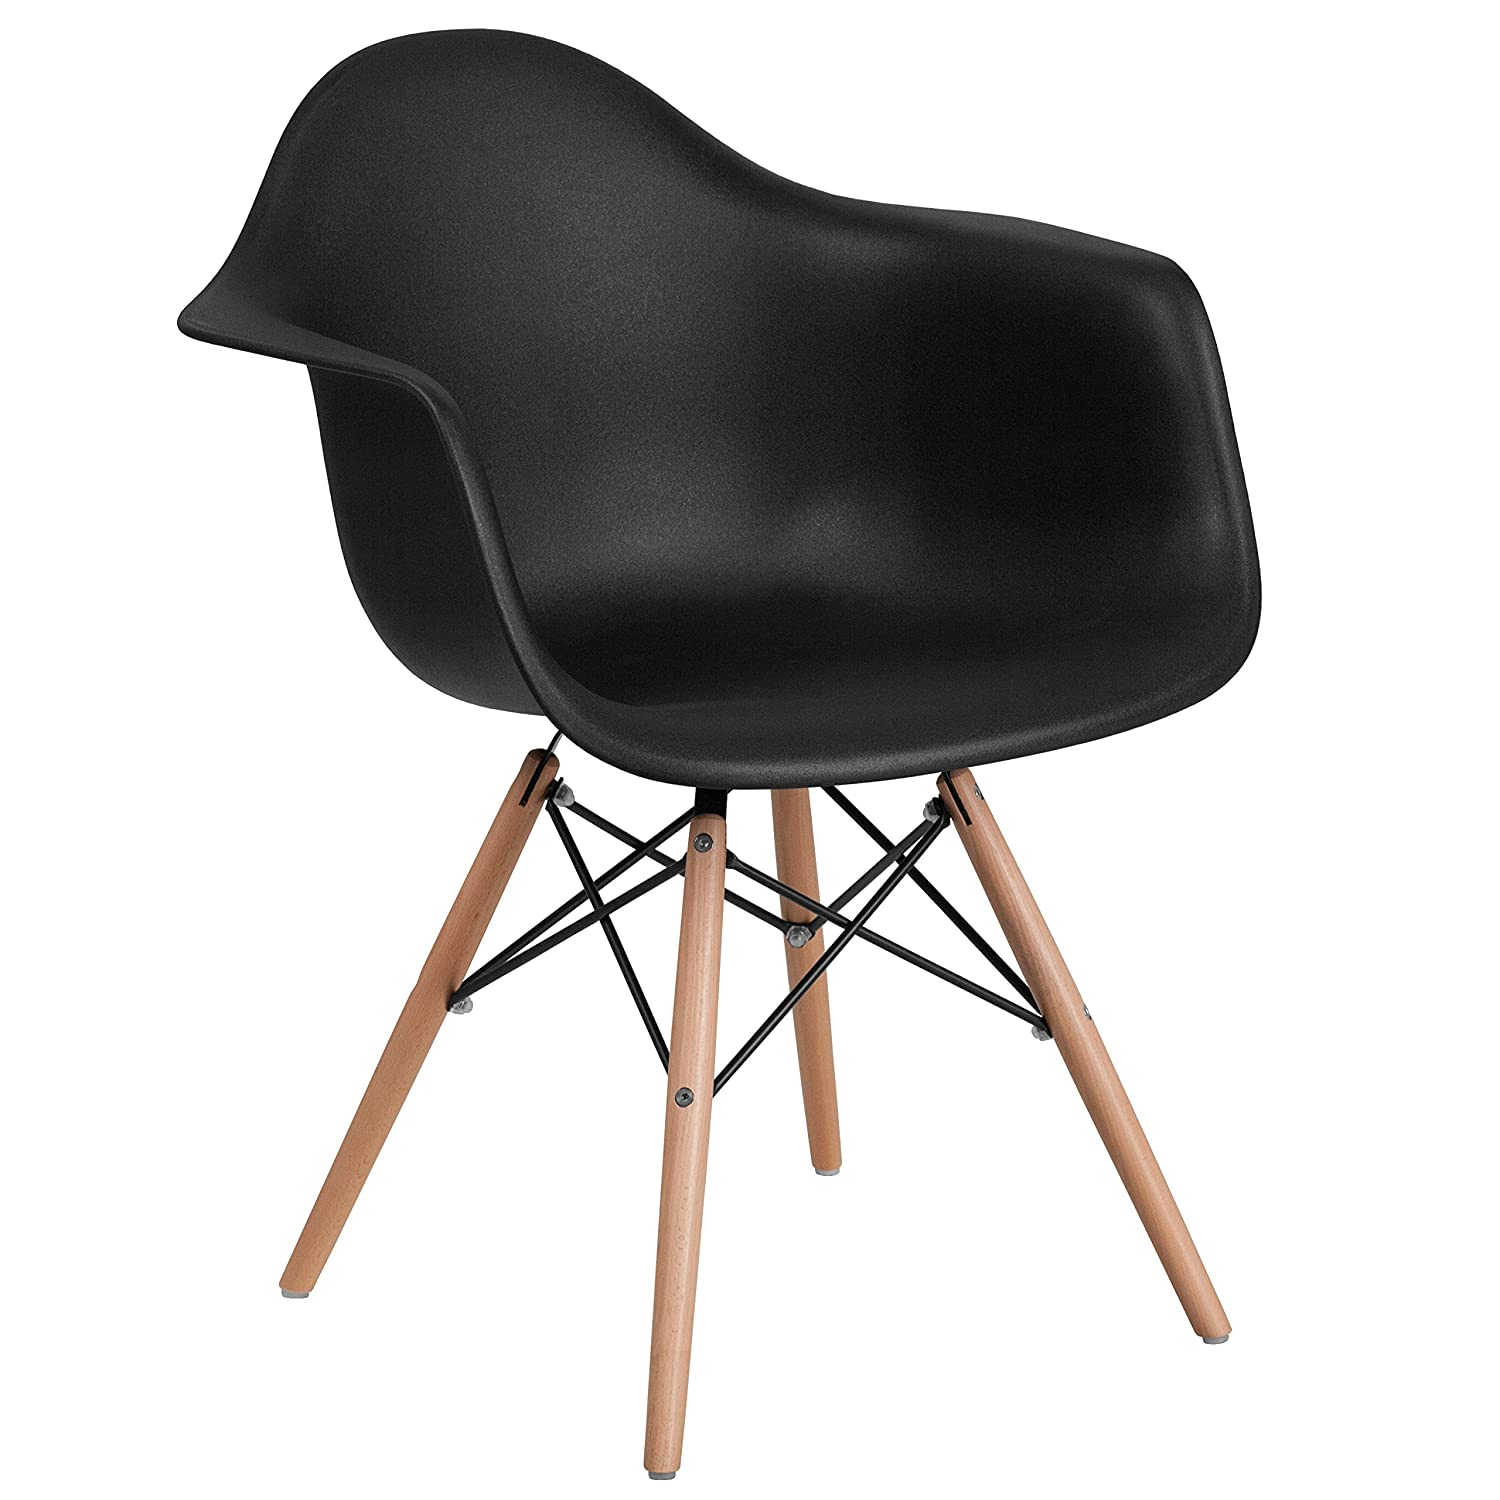 Flash Furniture Alonza Series Black Plastic Chair with Wooden Legs